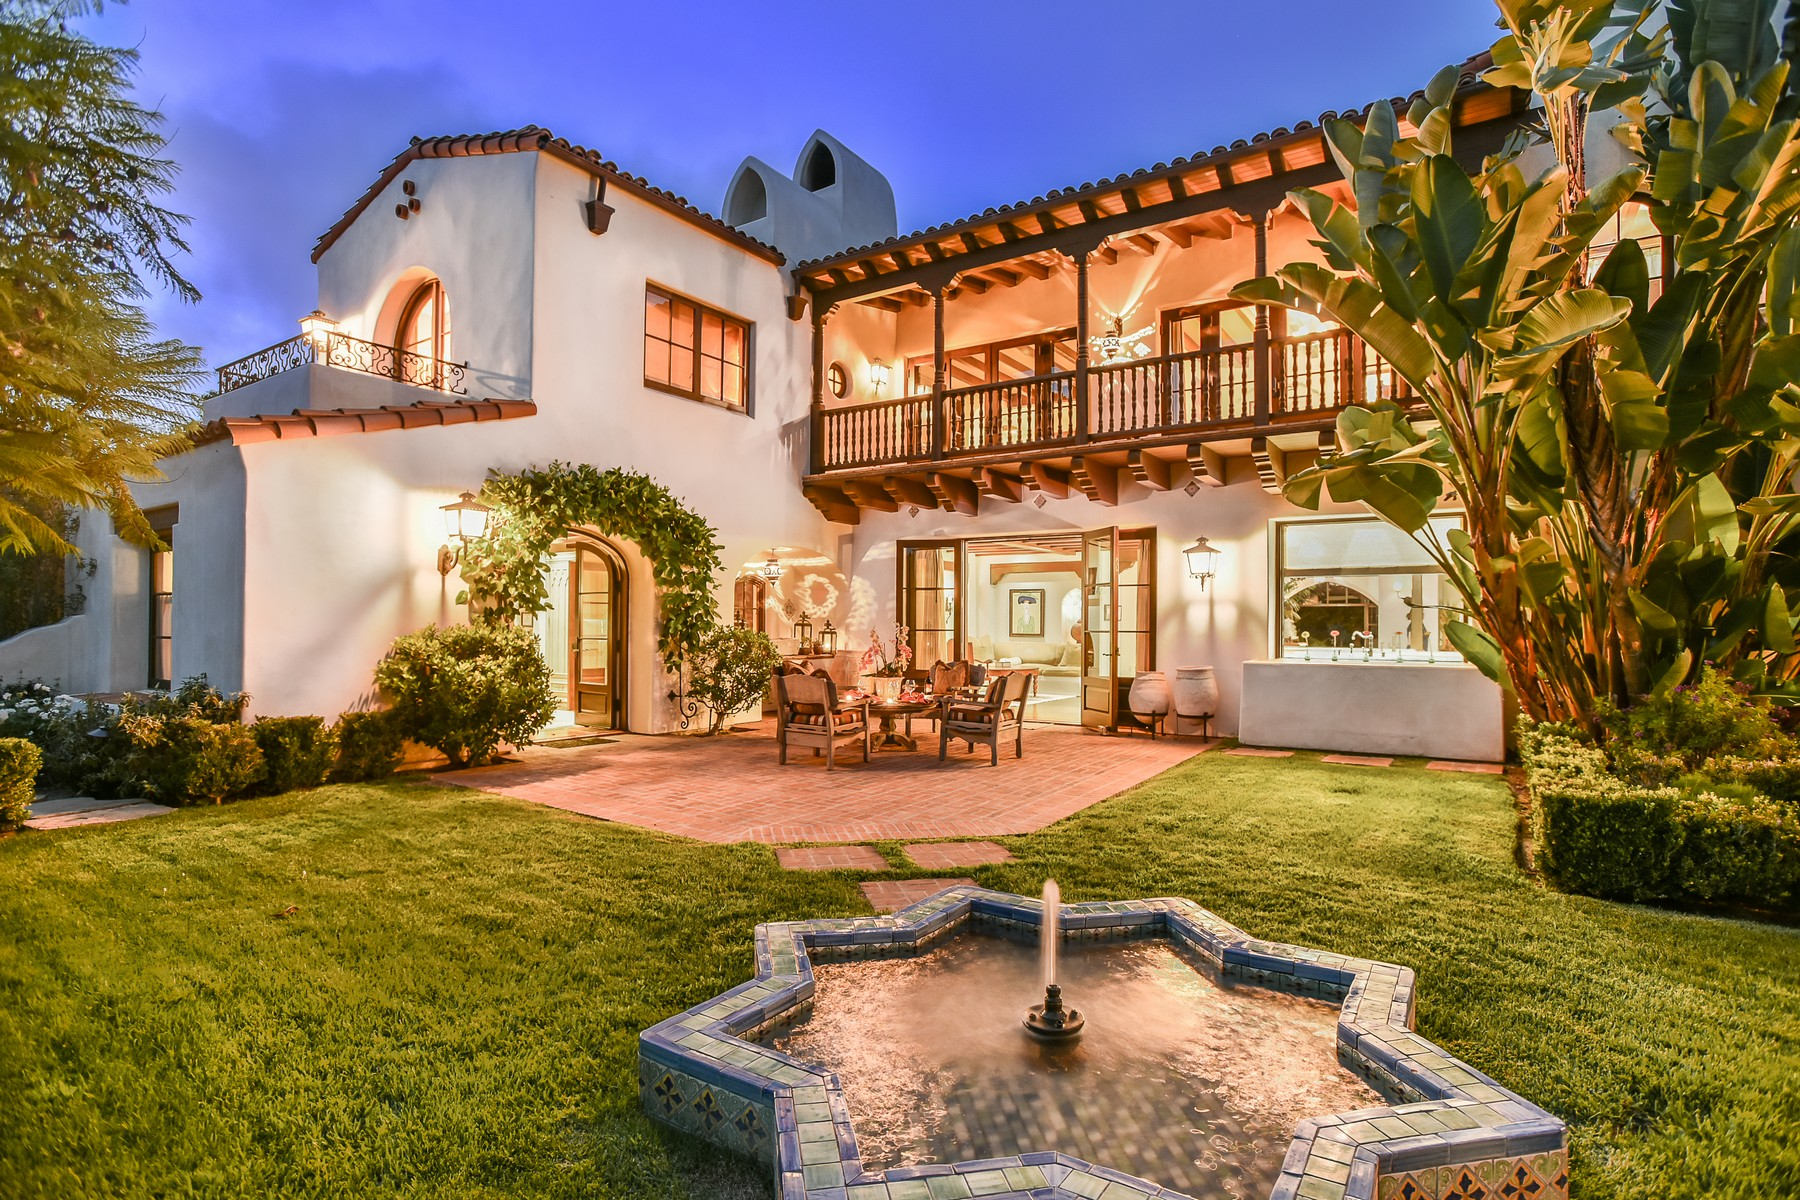 Single Family Home for Sale at 5956 San Elijo 5956 San Elijo Rancho Santa Fe, California 92067 United States